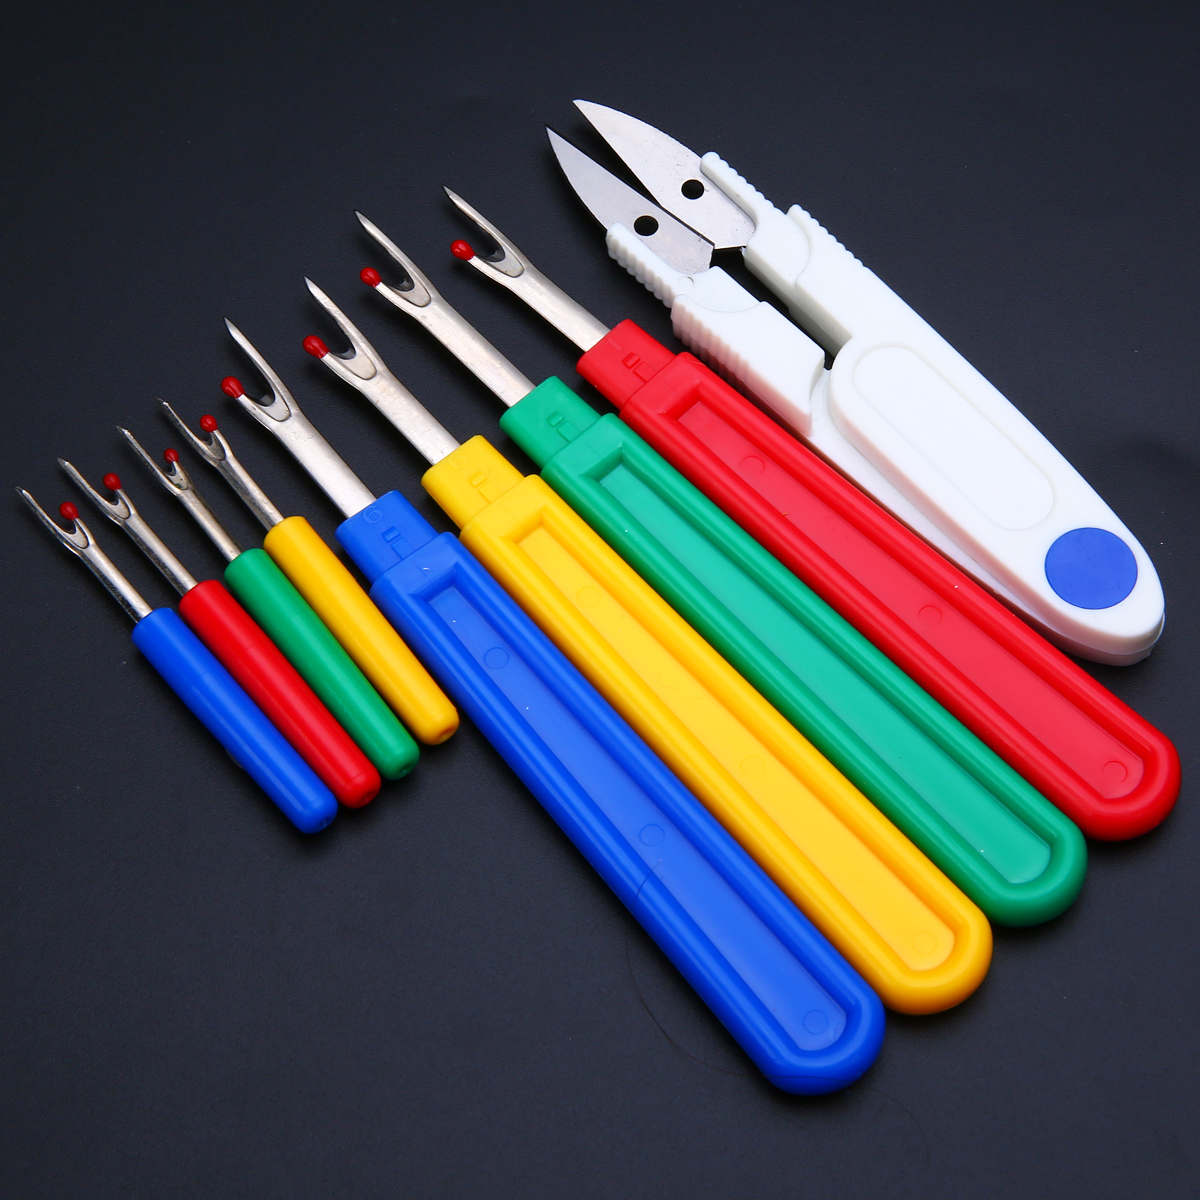 9pcs/set Small/Large Seam Ripper Stitch Unpicker Sewing Tool with Thread Cutter Plastic Handle DIY Craft Tool Accessories